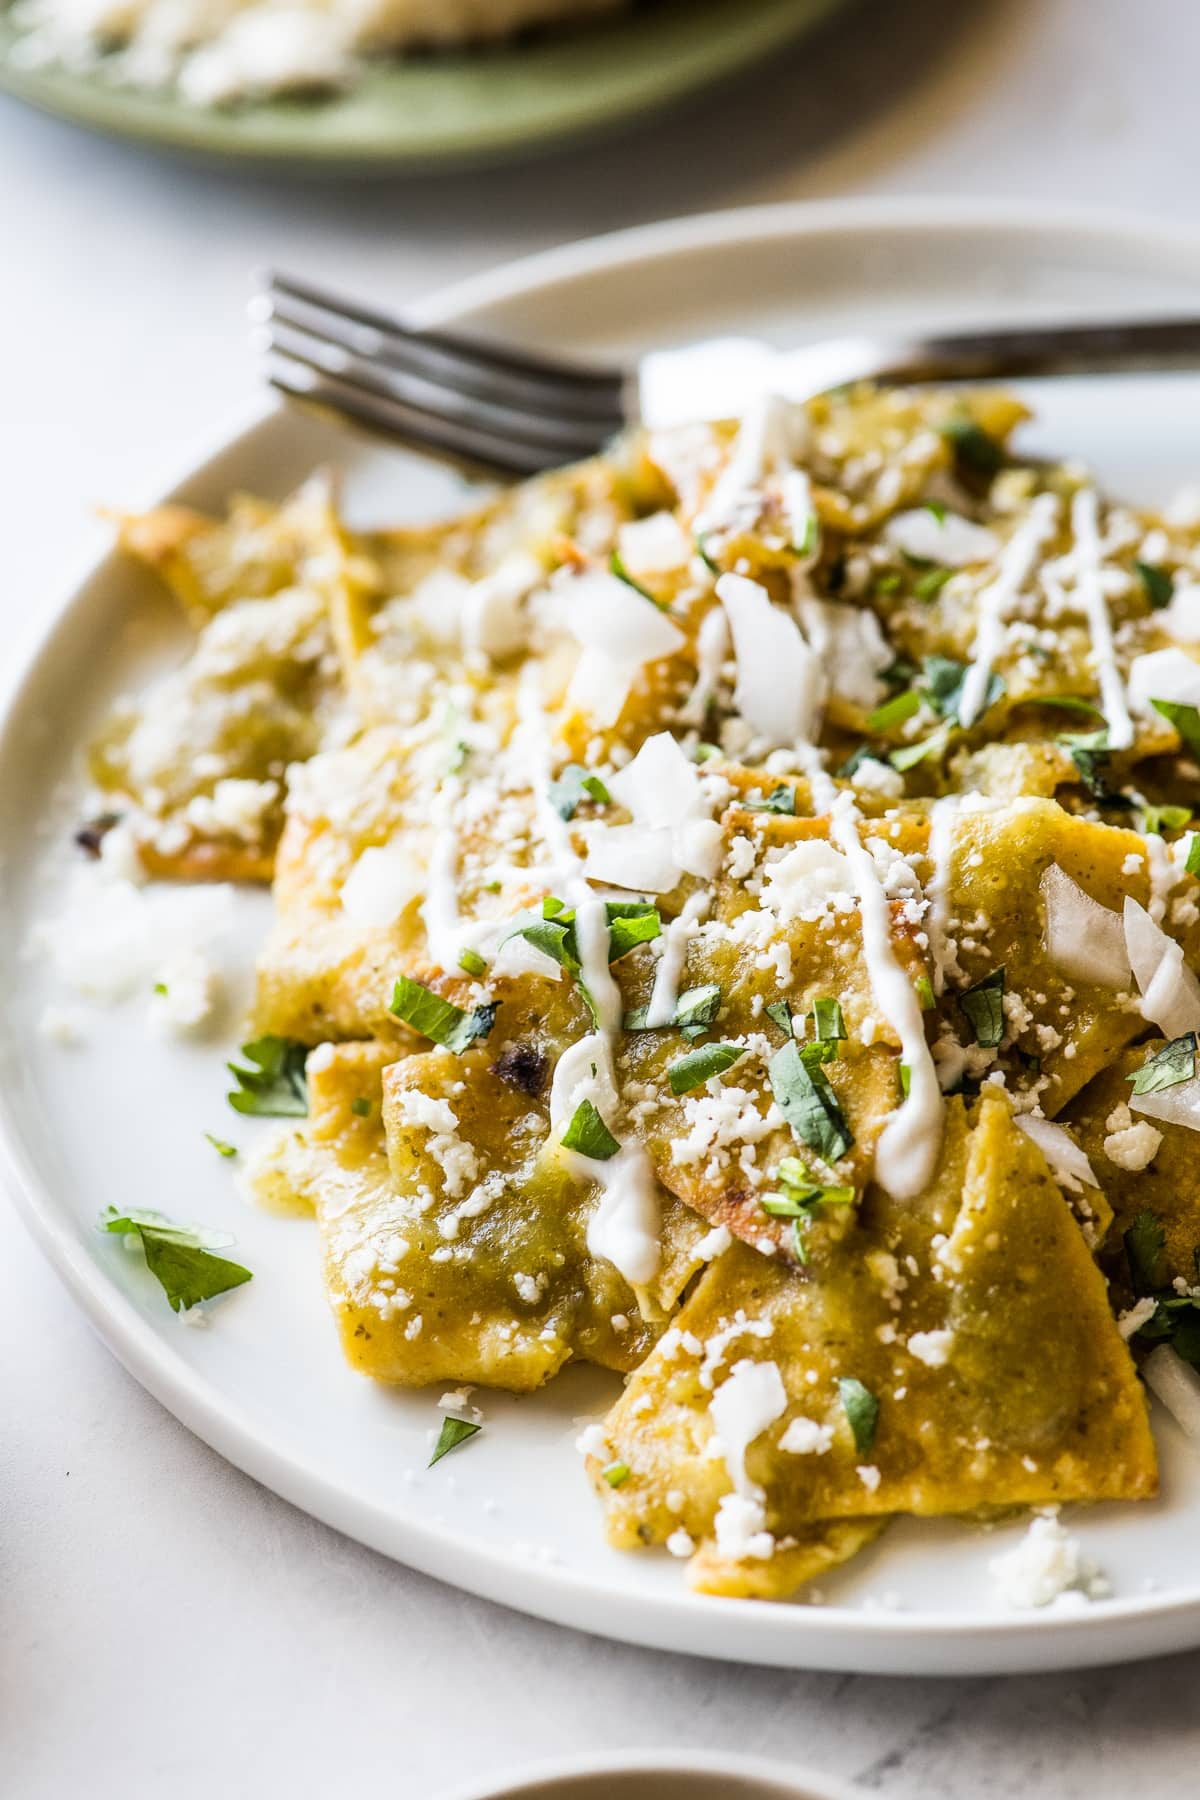 Chilaquiles verdes topped with crema, cilantro, and onions.